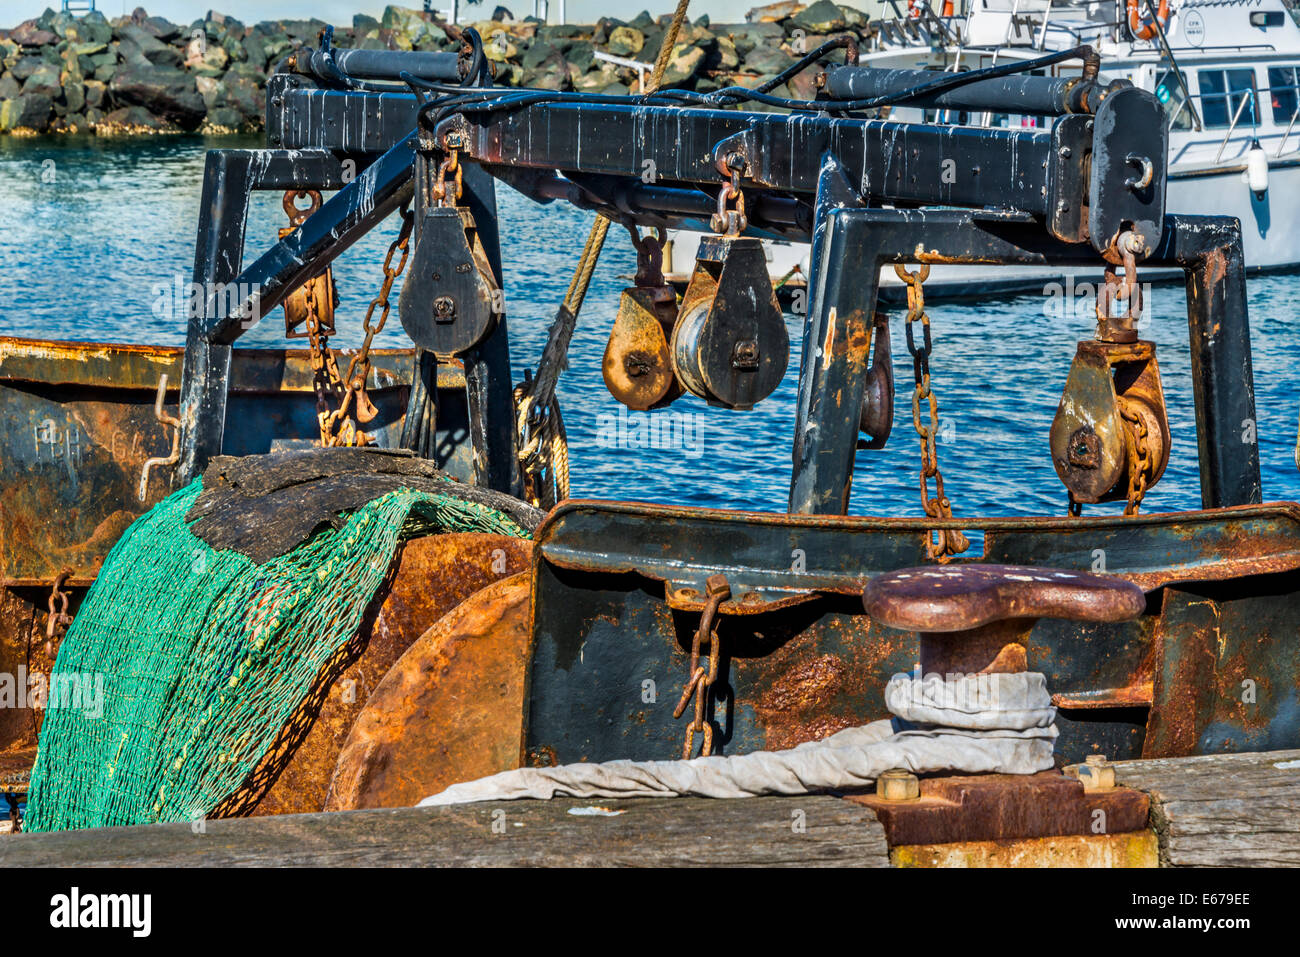 Fishing boat with heavy fishing equipment, rusted and weathered chains ropes pulleys and fishing nets moored Eden - Stock Image